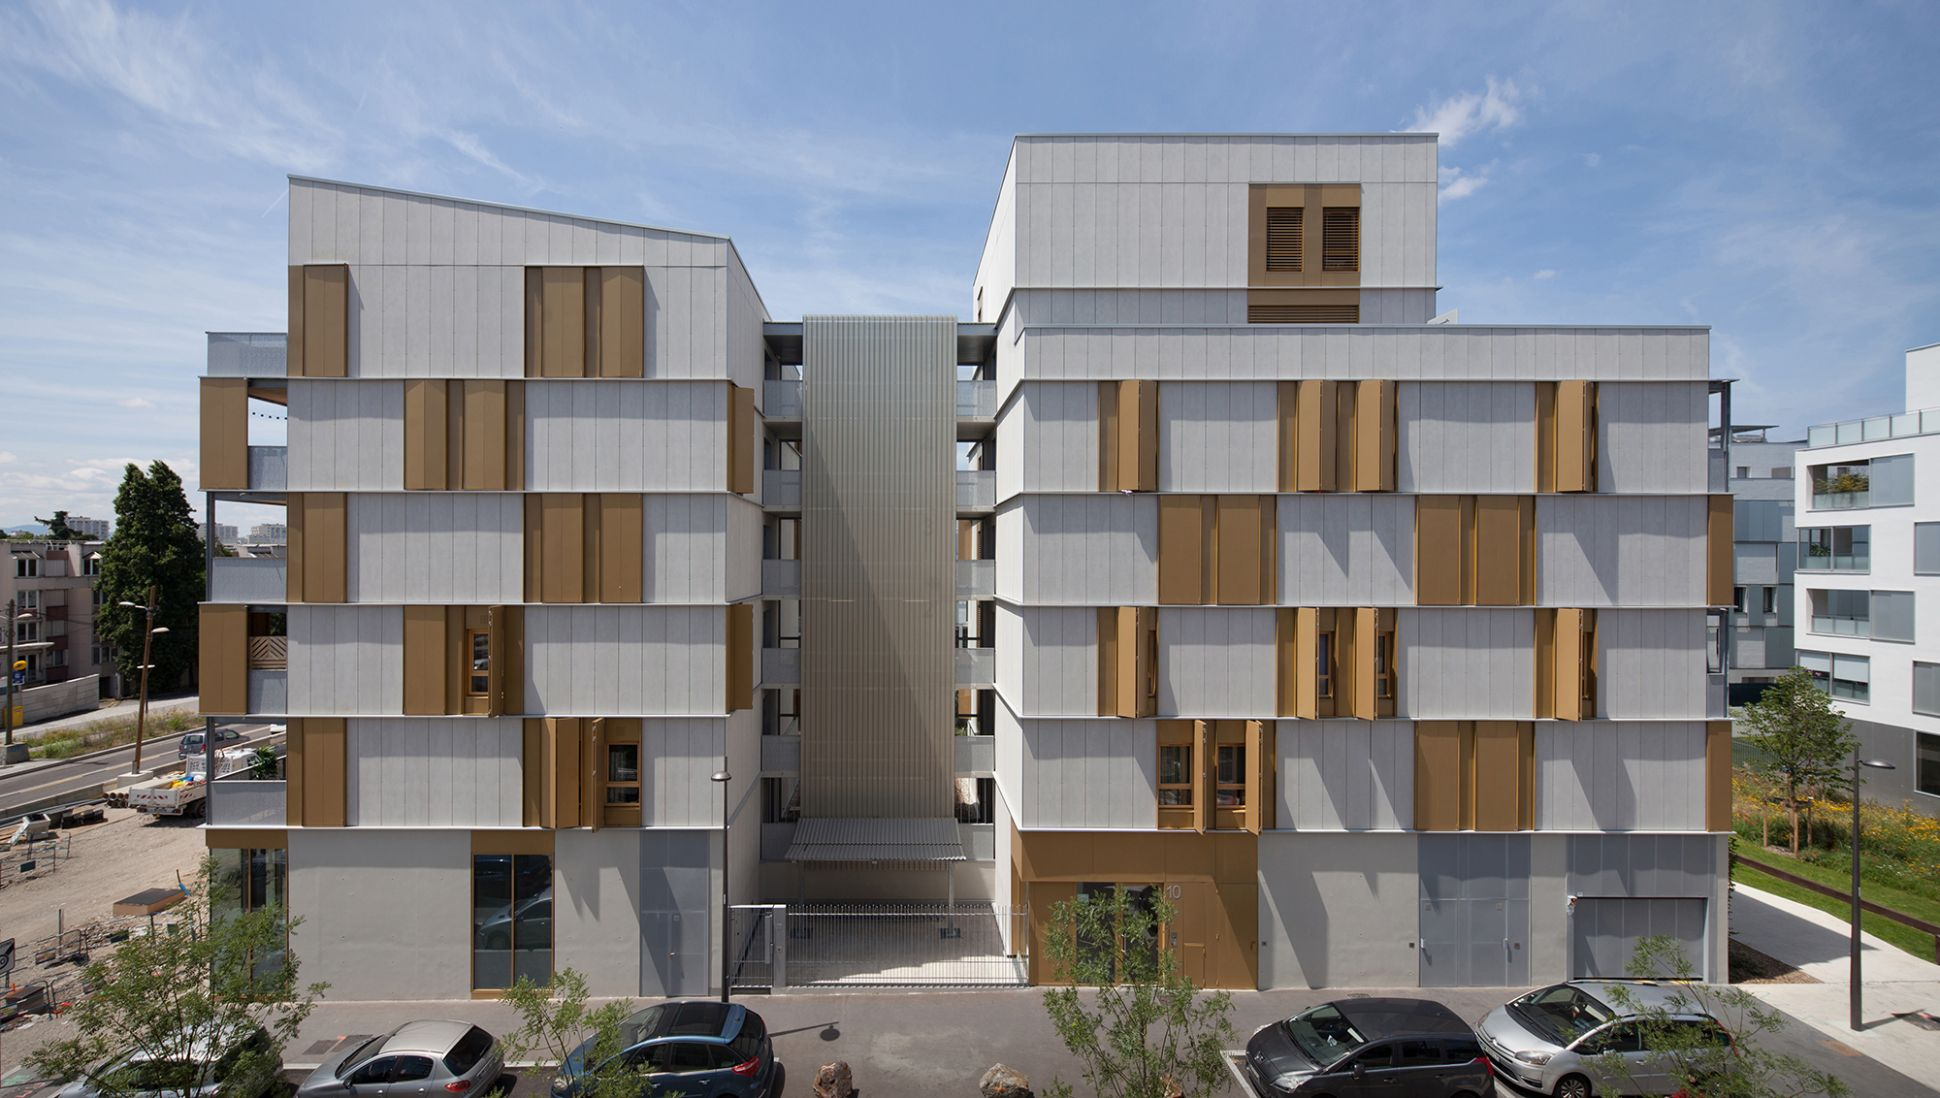 Colourful medley: 10 social apartments in Lyon - DETAIL - Magazine ..